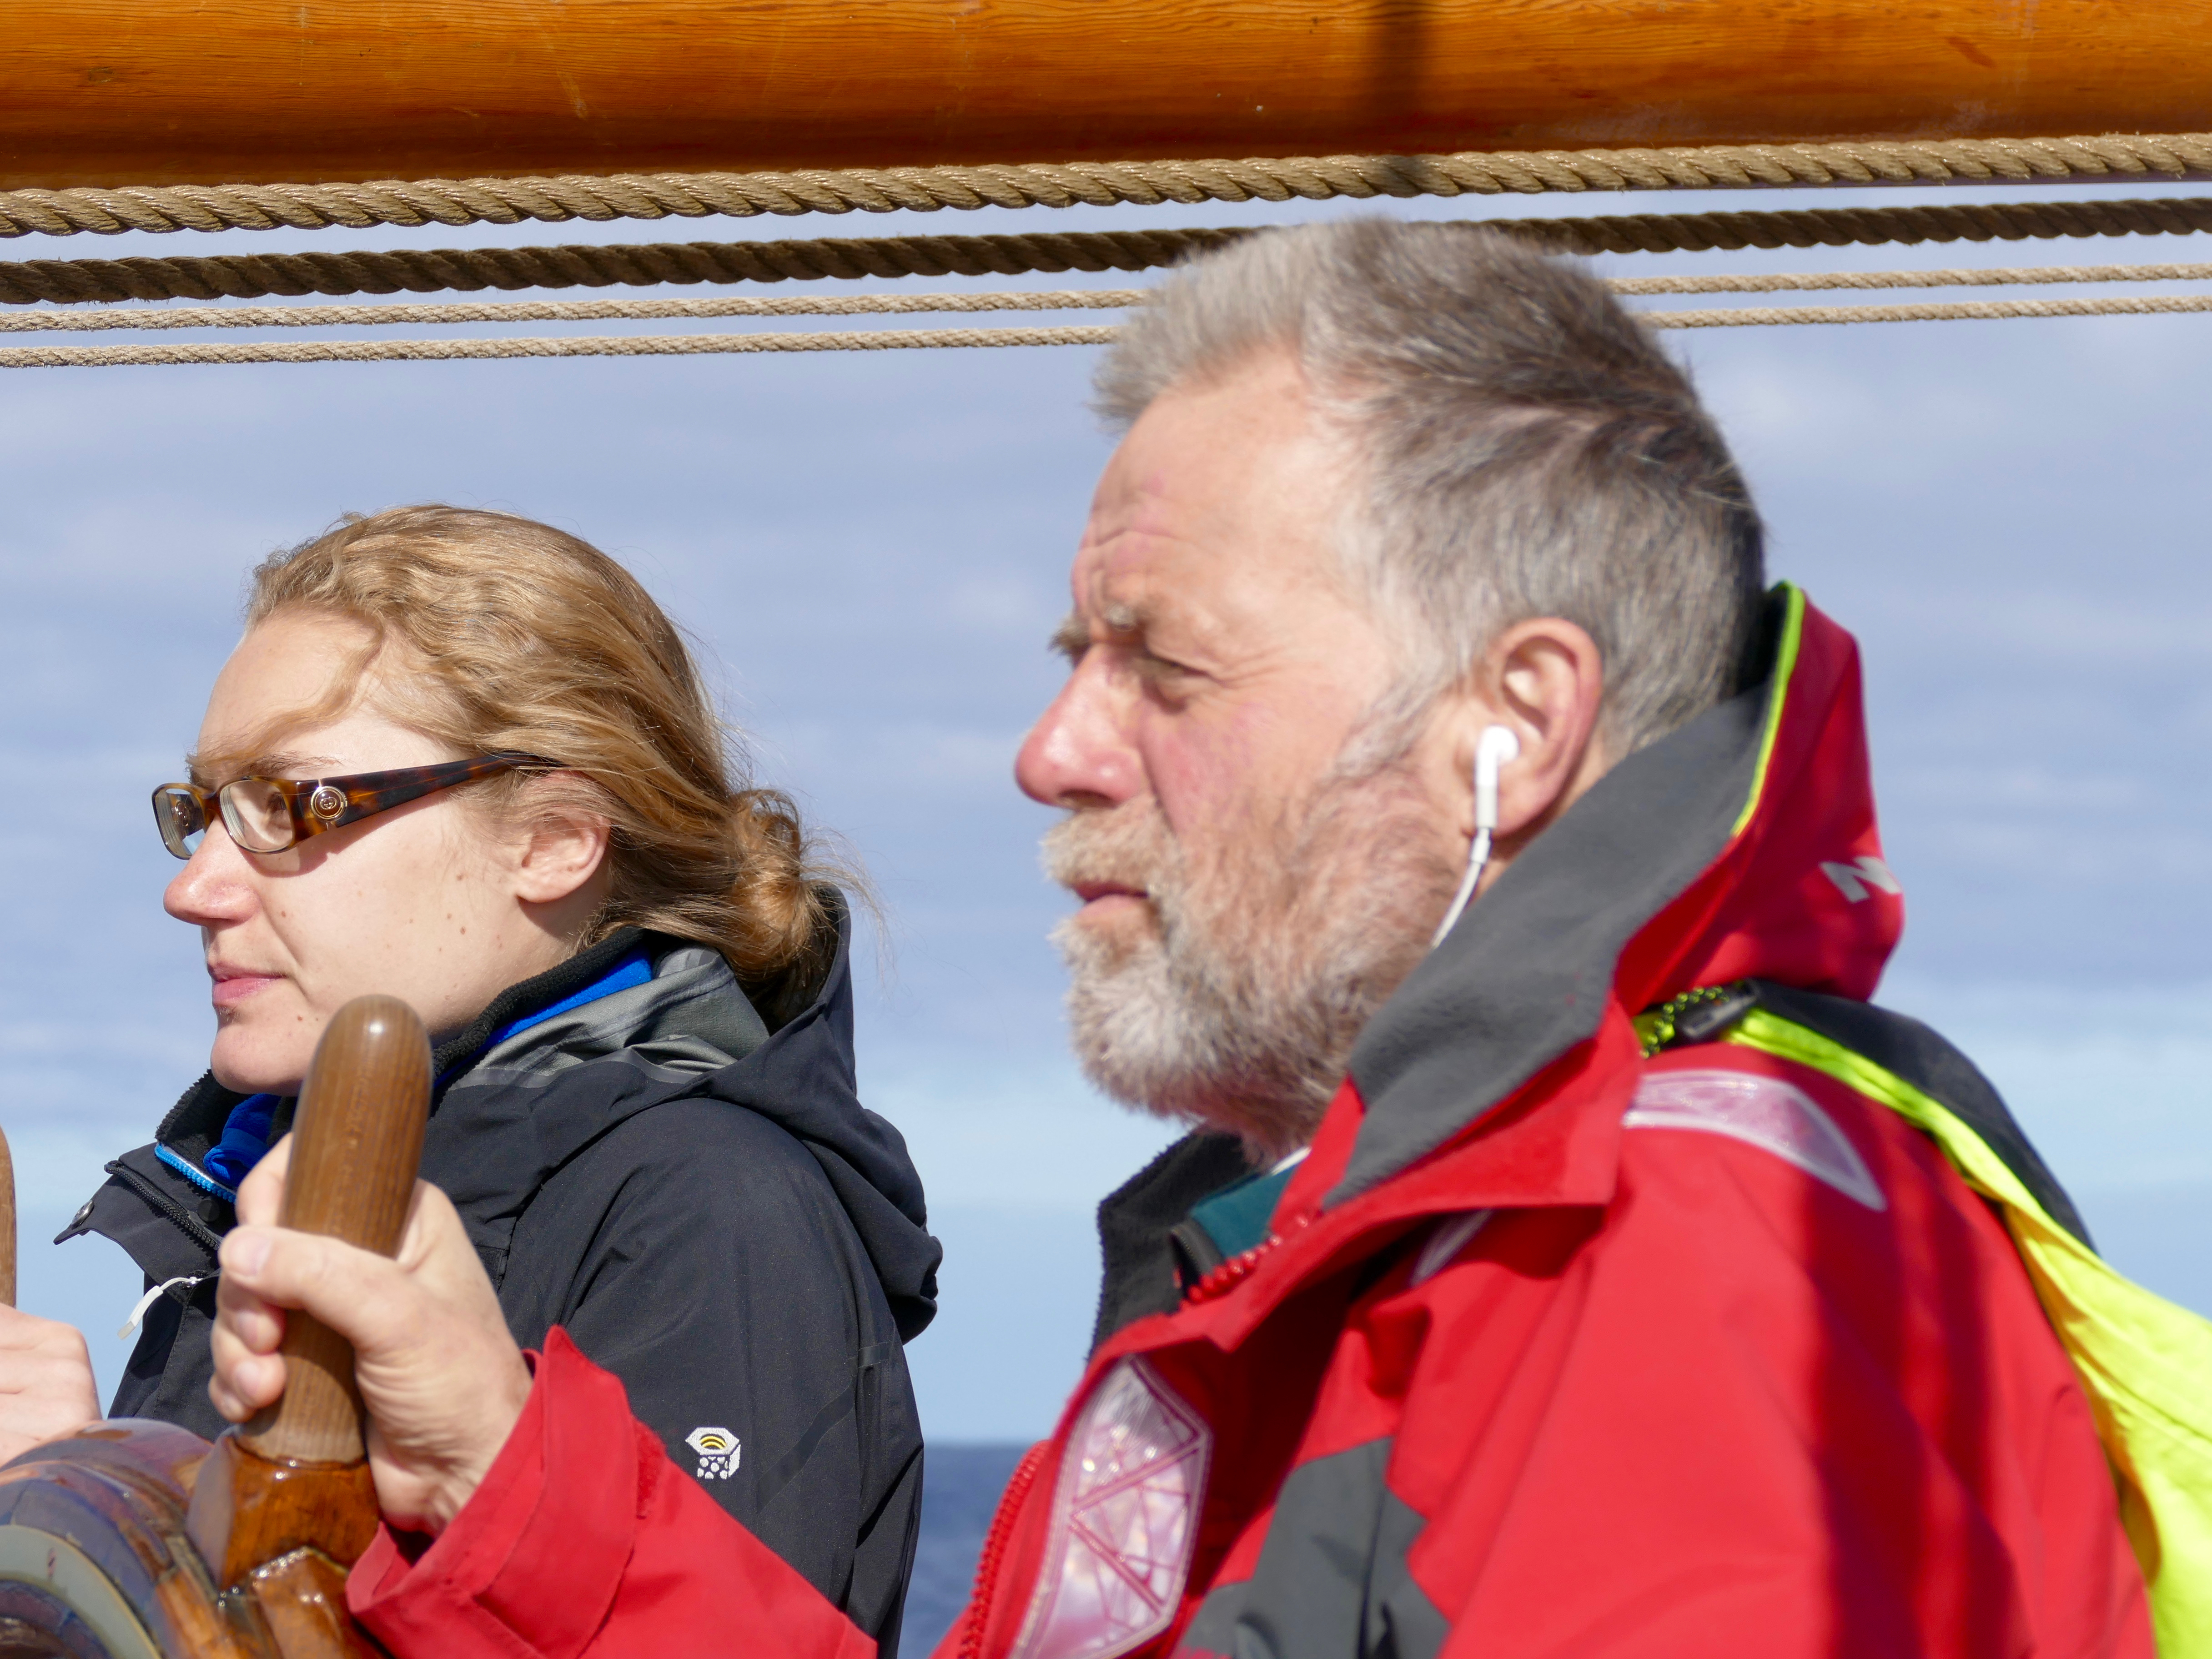 Rob Dan and Clara at the helm of Europa